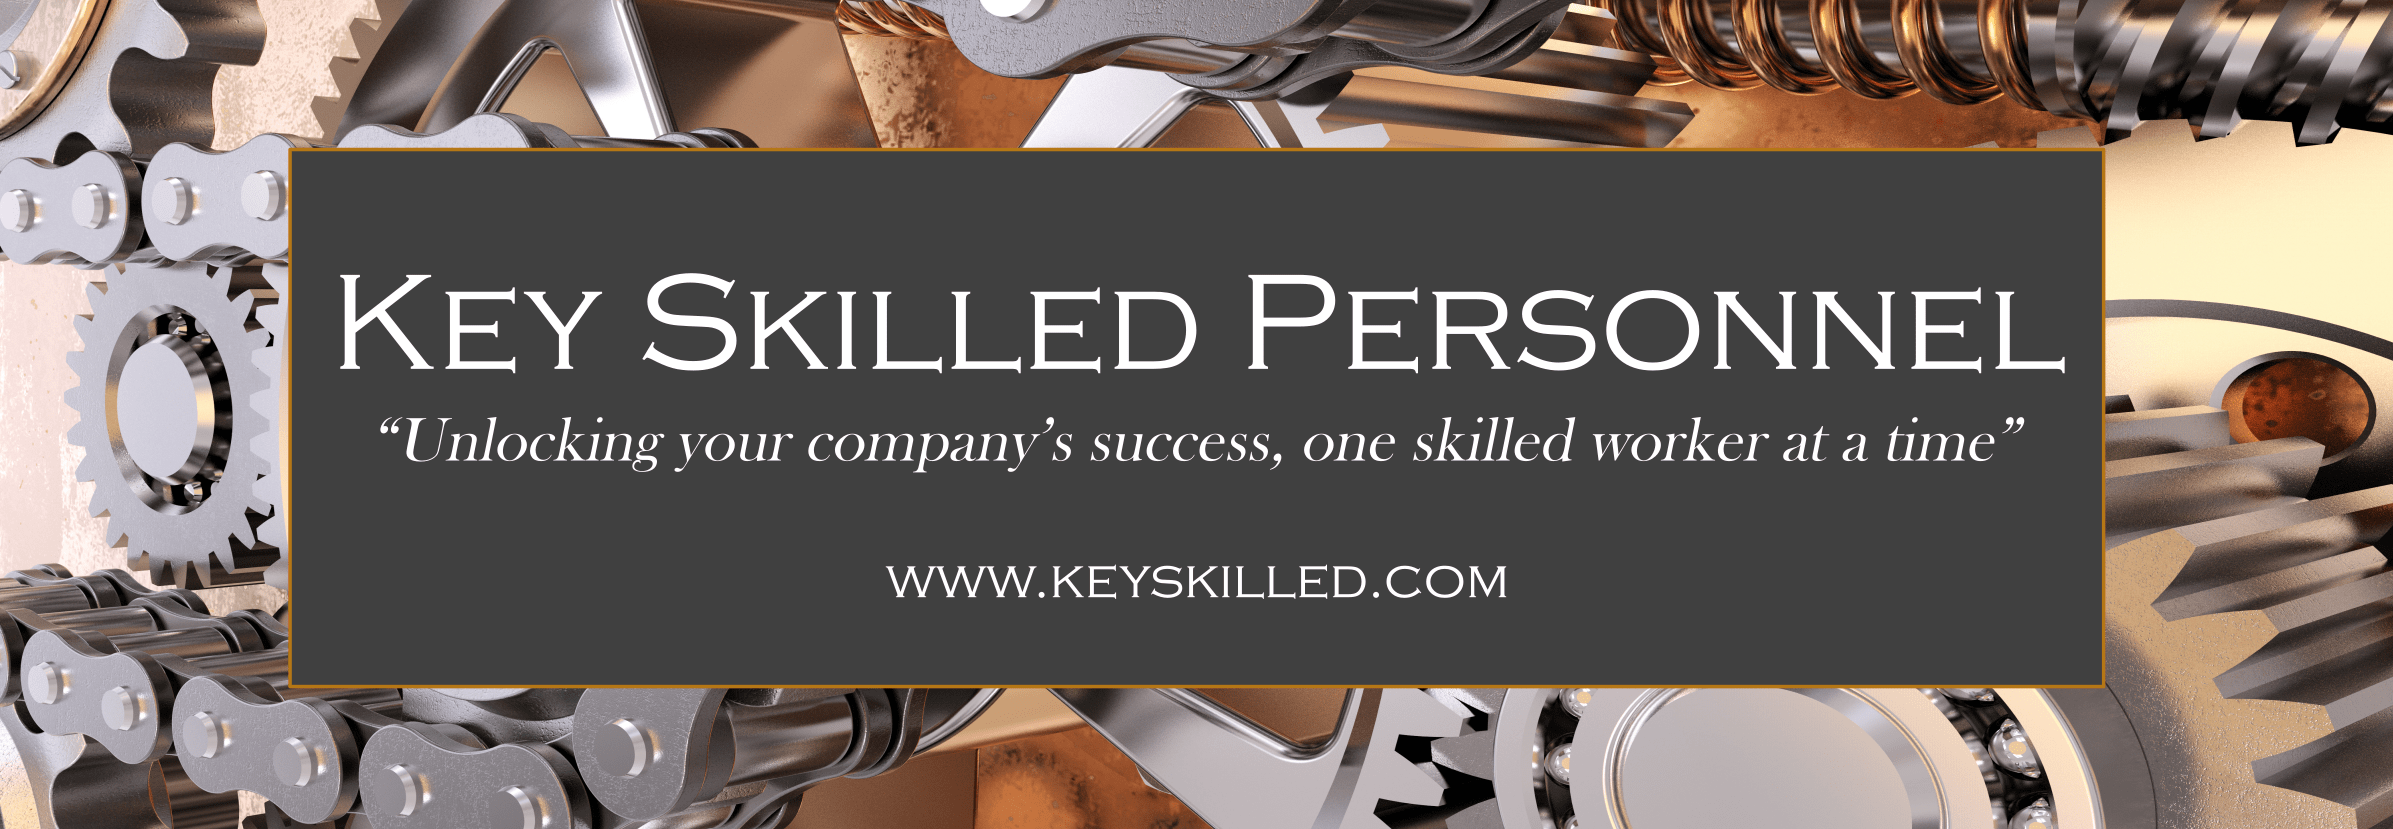 Key Skilled Personnel